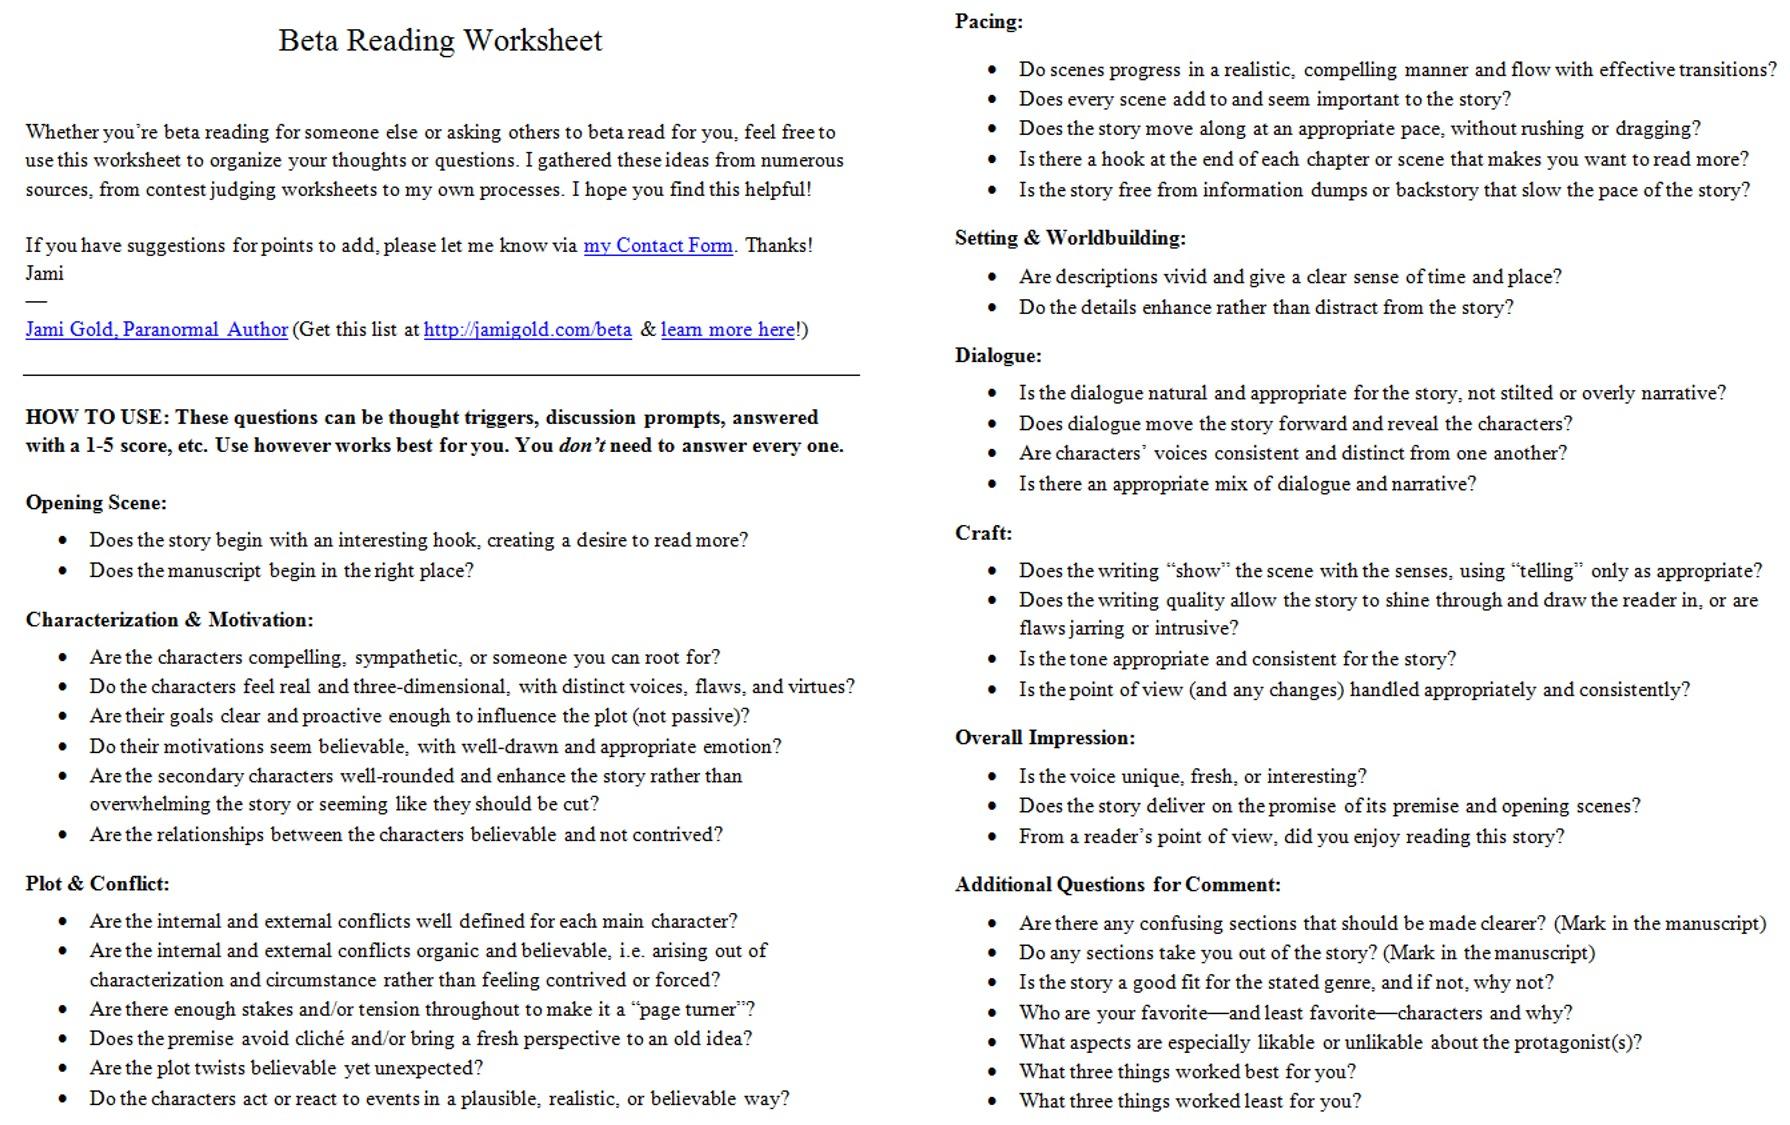 Aldiablosus  Pretty Worksheets For Writers  Jami Gold Paranormal Author With Heavenly Screen Shot Of The Twopage Beta Reading Worksheet With Beautiful Geography Worksheets Ks Also Sight Word I Worksheets In Addition Venn Diagrams Math Worksheets And Grade  Mathematics Worksheets As Well As Free Tens And Ones Worksheets Additionally Good Samaritan Worksheet From Jamigoldcom With Aldiablosus  Heavenly Worksheets For Writers  Jami Gold Paranormal Author With Beautiful Screen Shot Of The Twopage Beta Reading Worksheet And Pretty Geography Worksheets Ks Also Sight Word I Worksheets In Addition Venn Diagrams Math Worksheets From Jamigoldcom